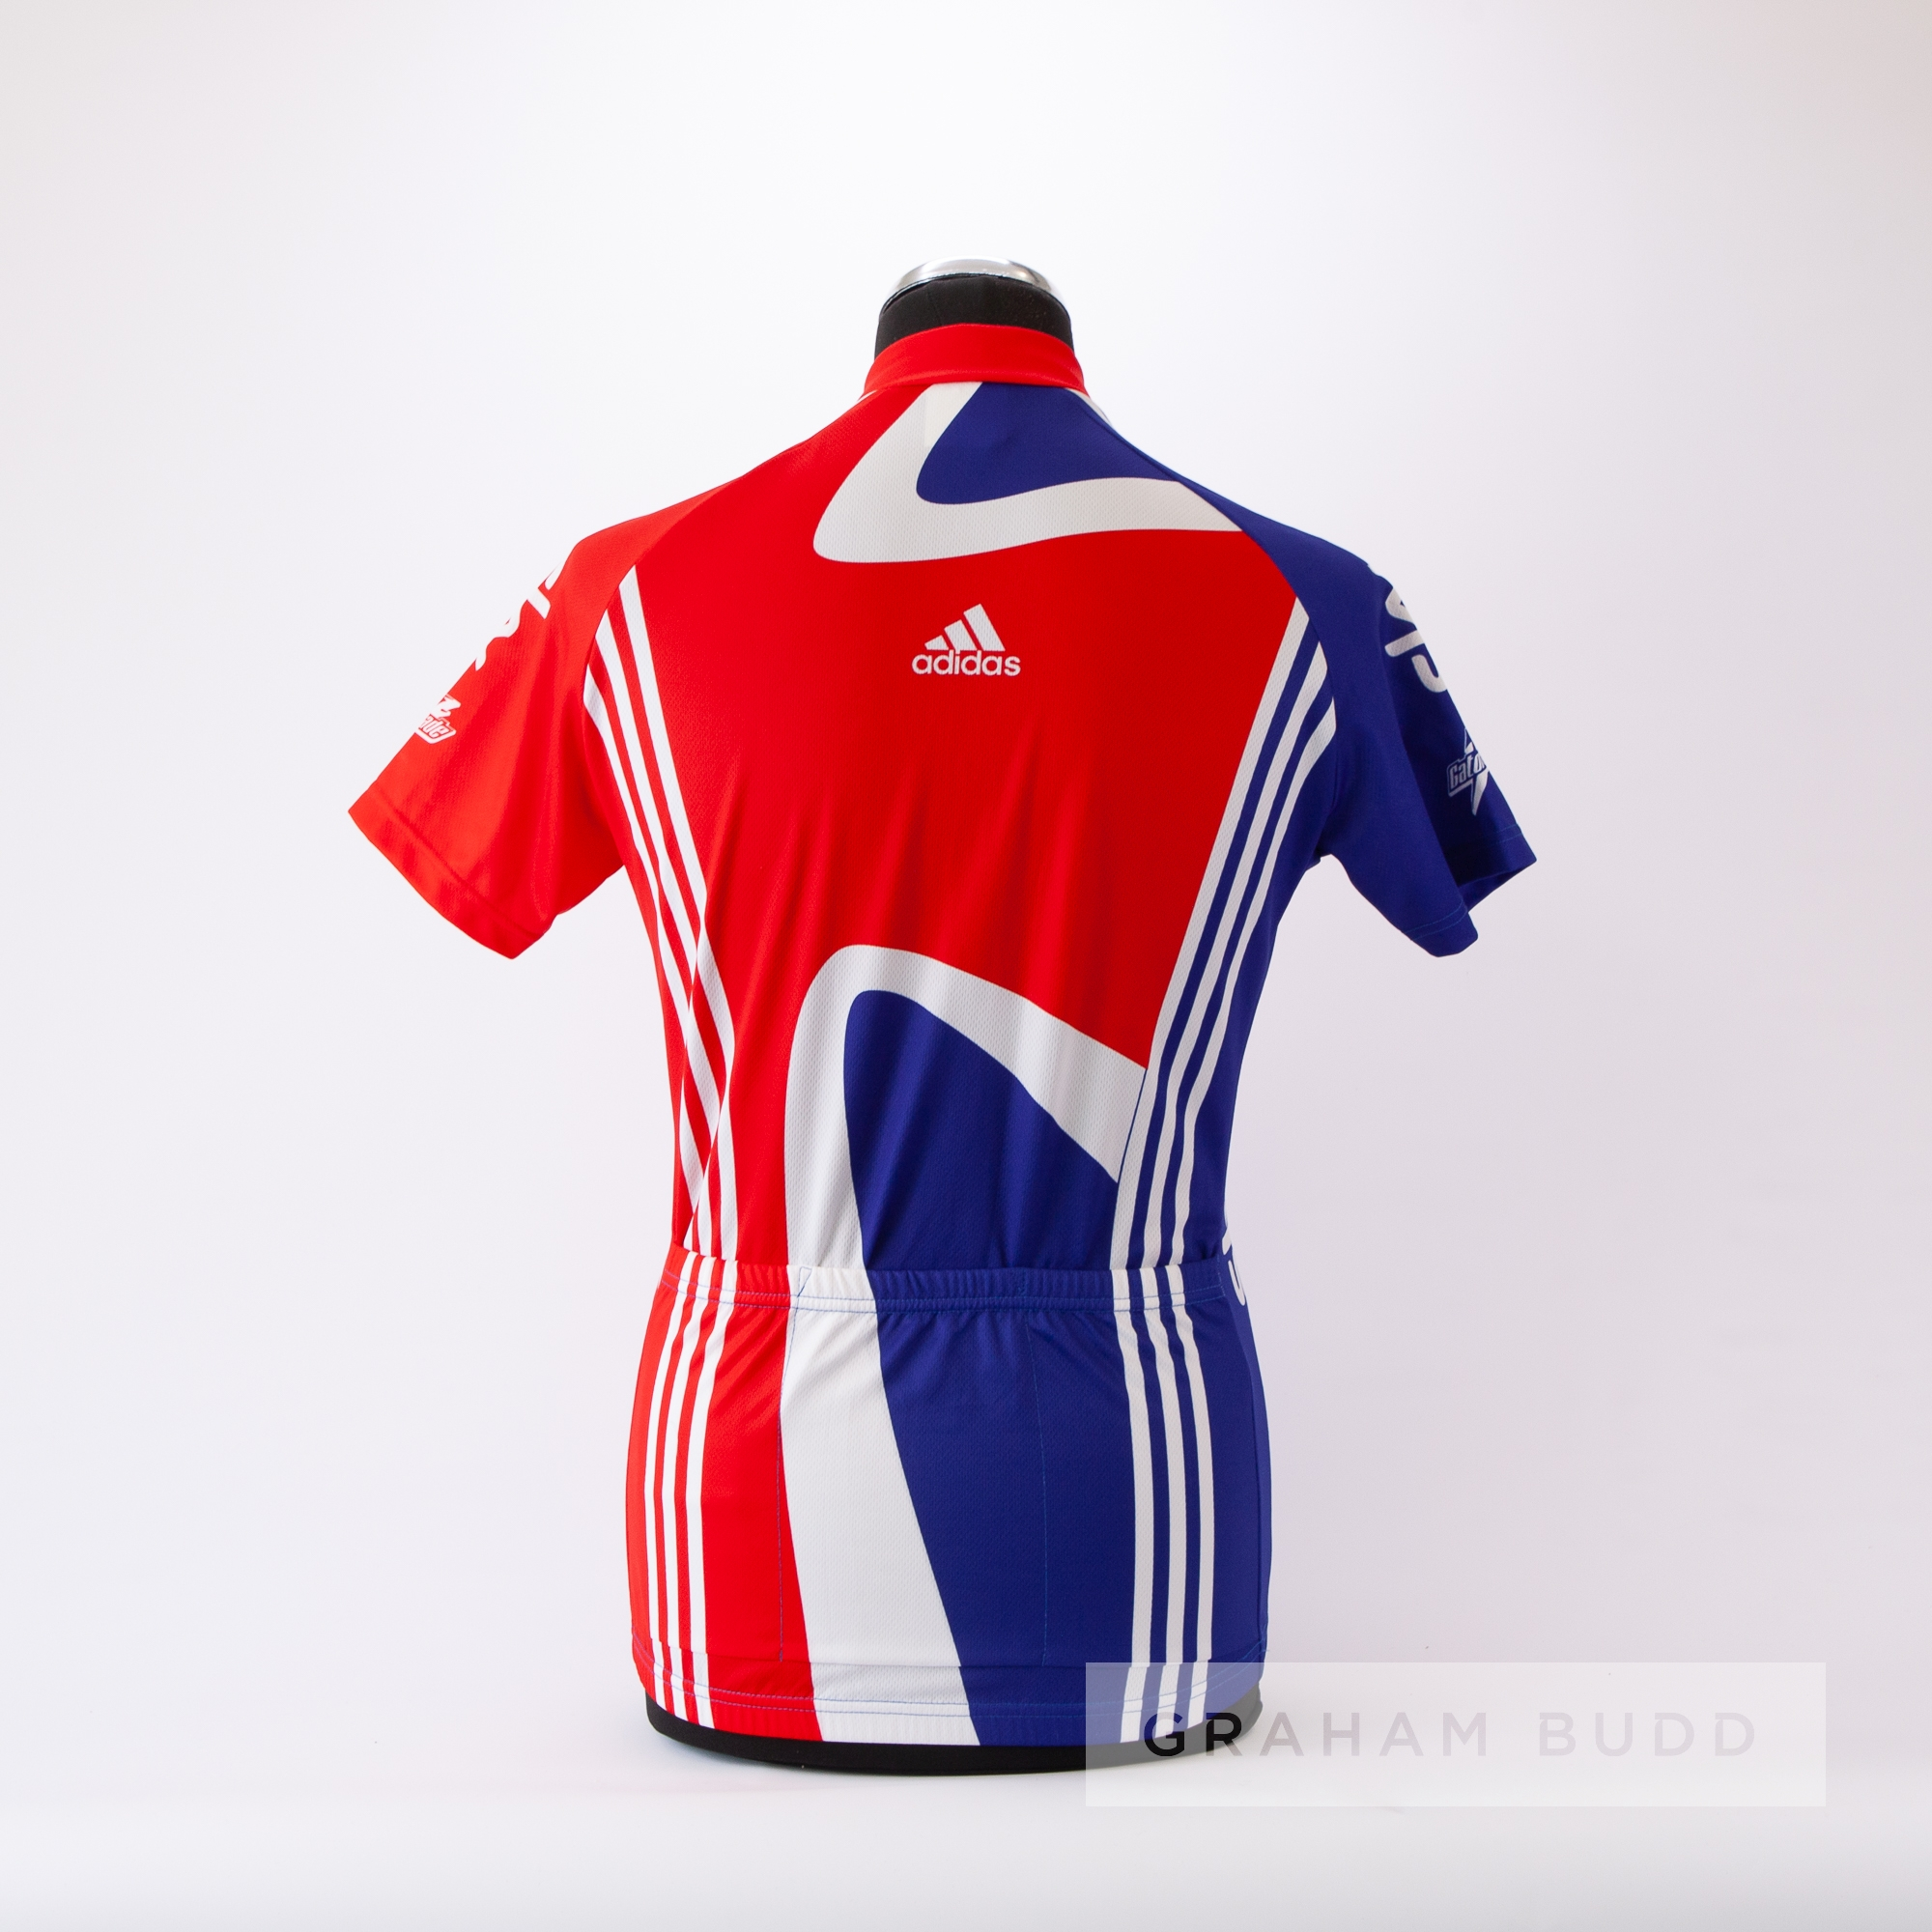 2011 red, white and blue Great Britain Adidas Sky Cycling race jersey, scarce, polyester short- - Image 4 of 4